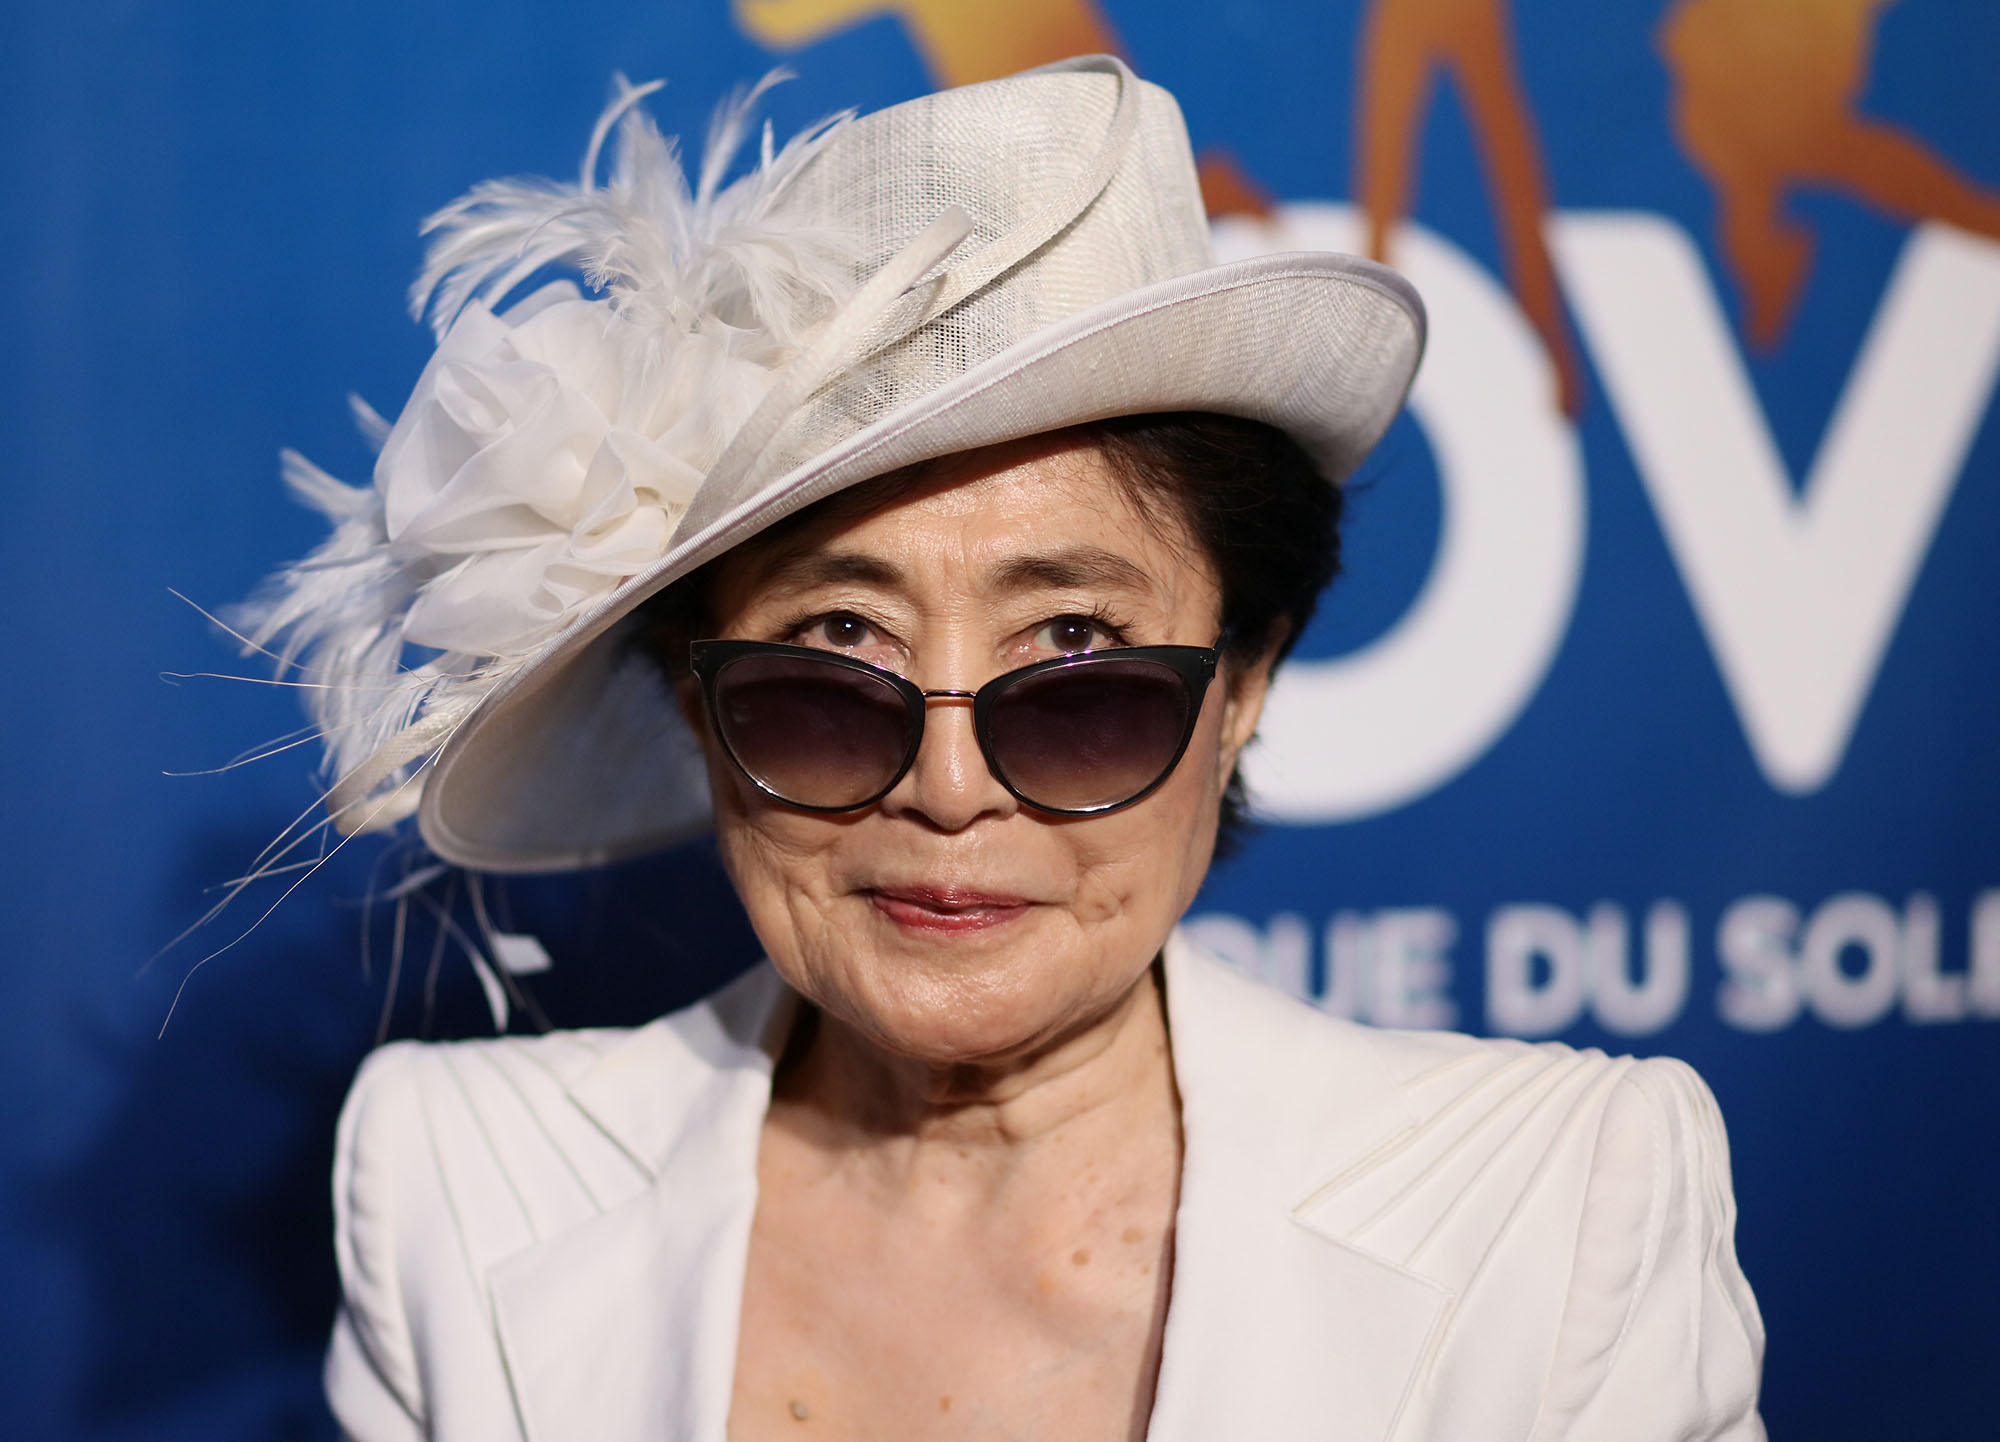 Yoko Ono attends the 10th anniversary celebration of 'The Beatles LOVE by Cirque du Soleil' at The Mirage Hotel & Casino on July 14, 2016 in Las Vegas, Nevada.  (Photo by JB Lacroix/Getty Images)